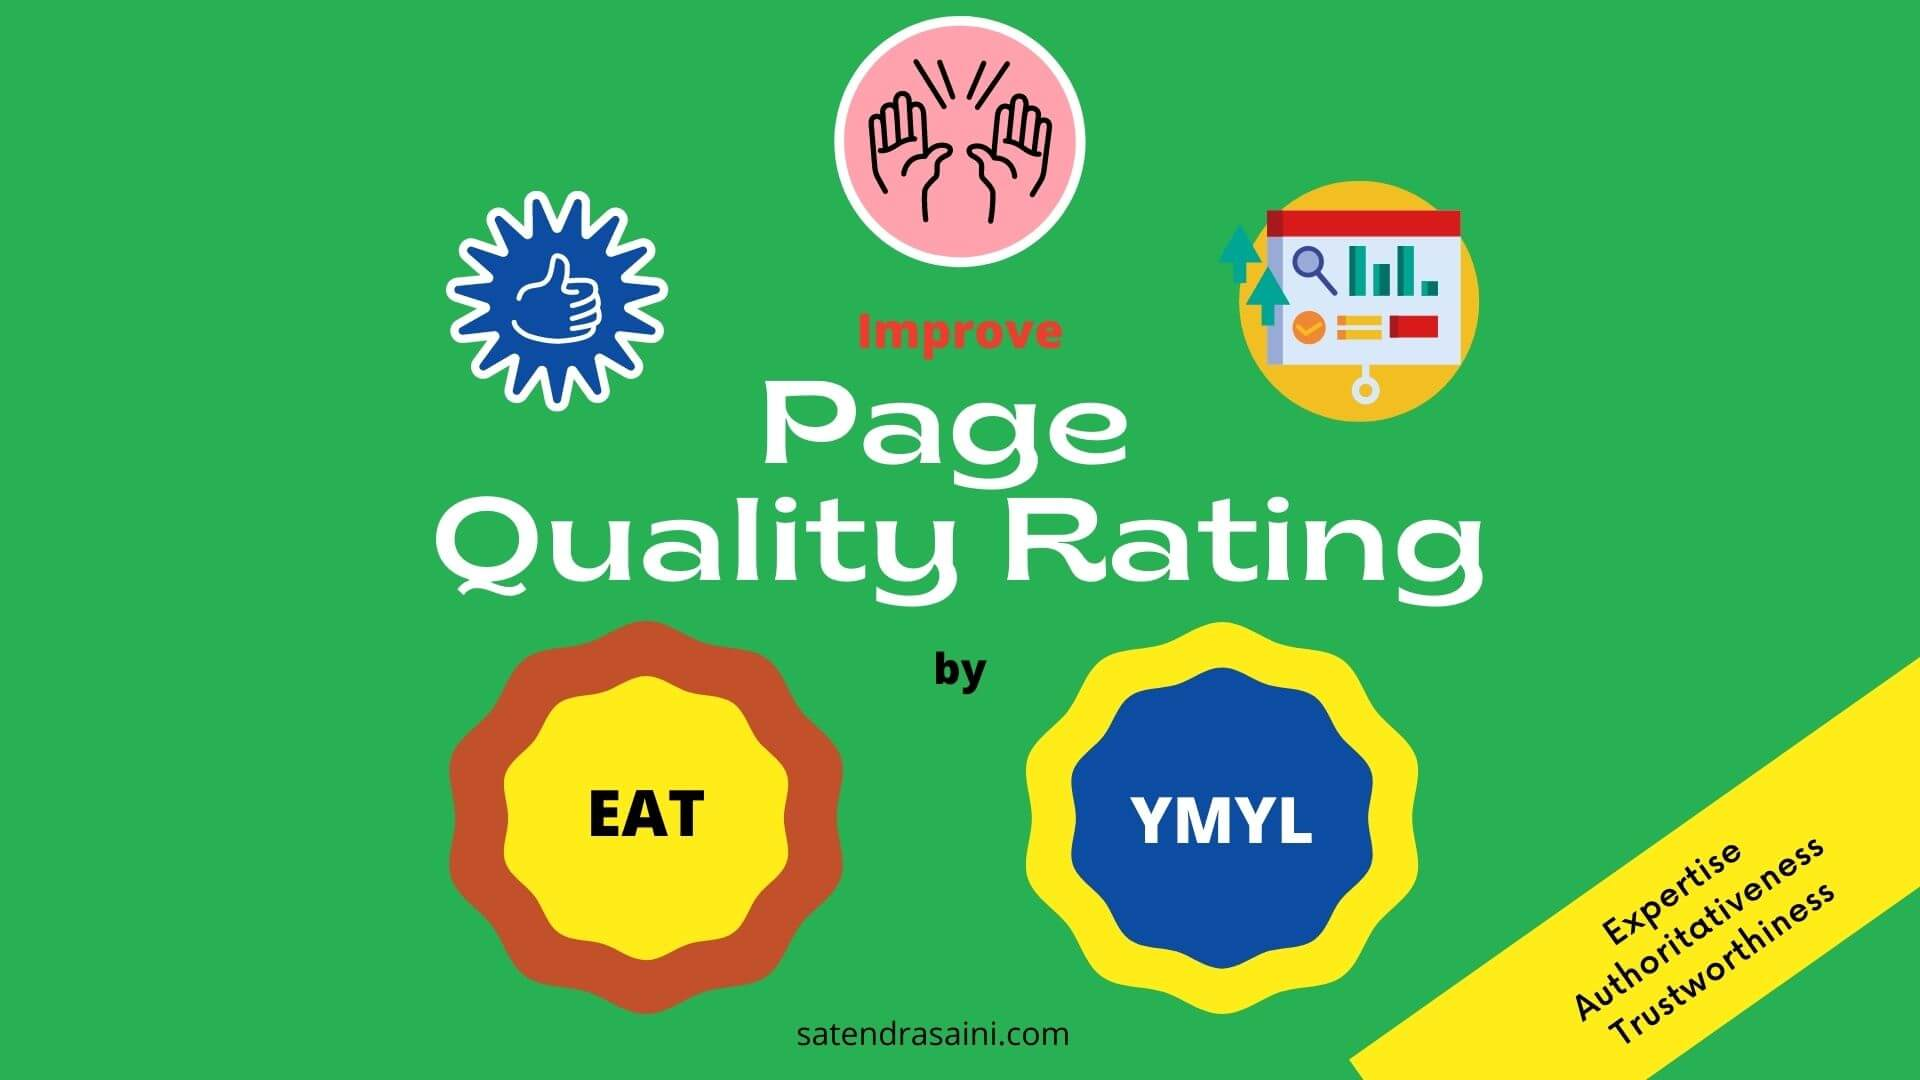 Page Quality Rating E.A.T. YMYL